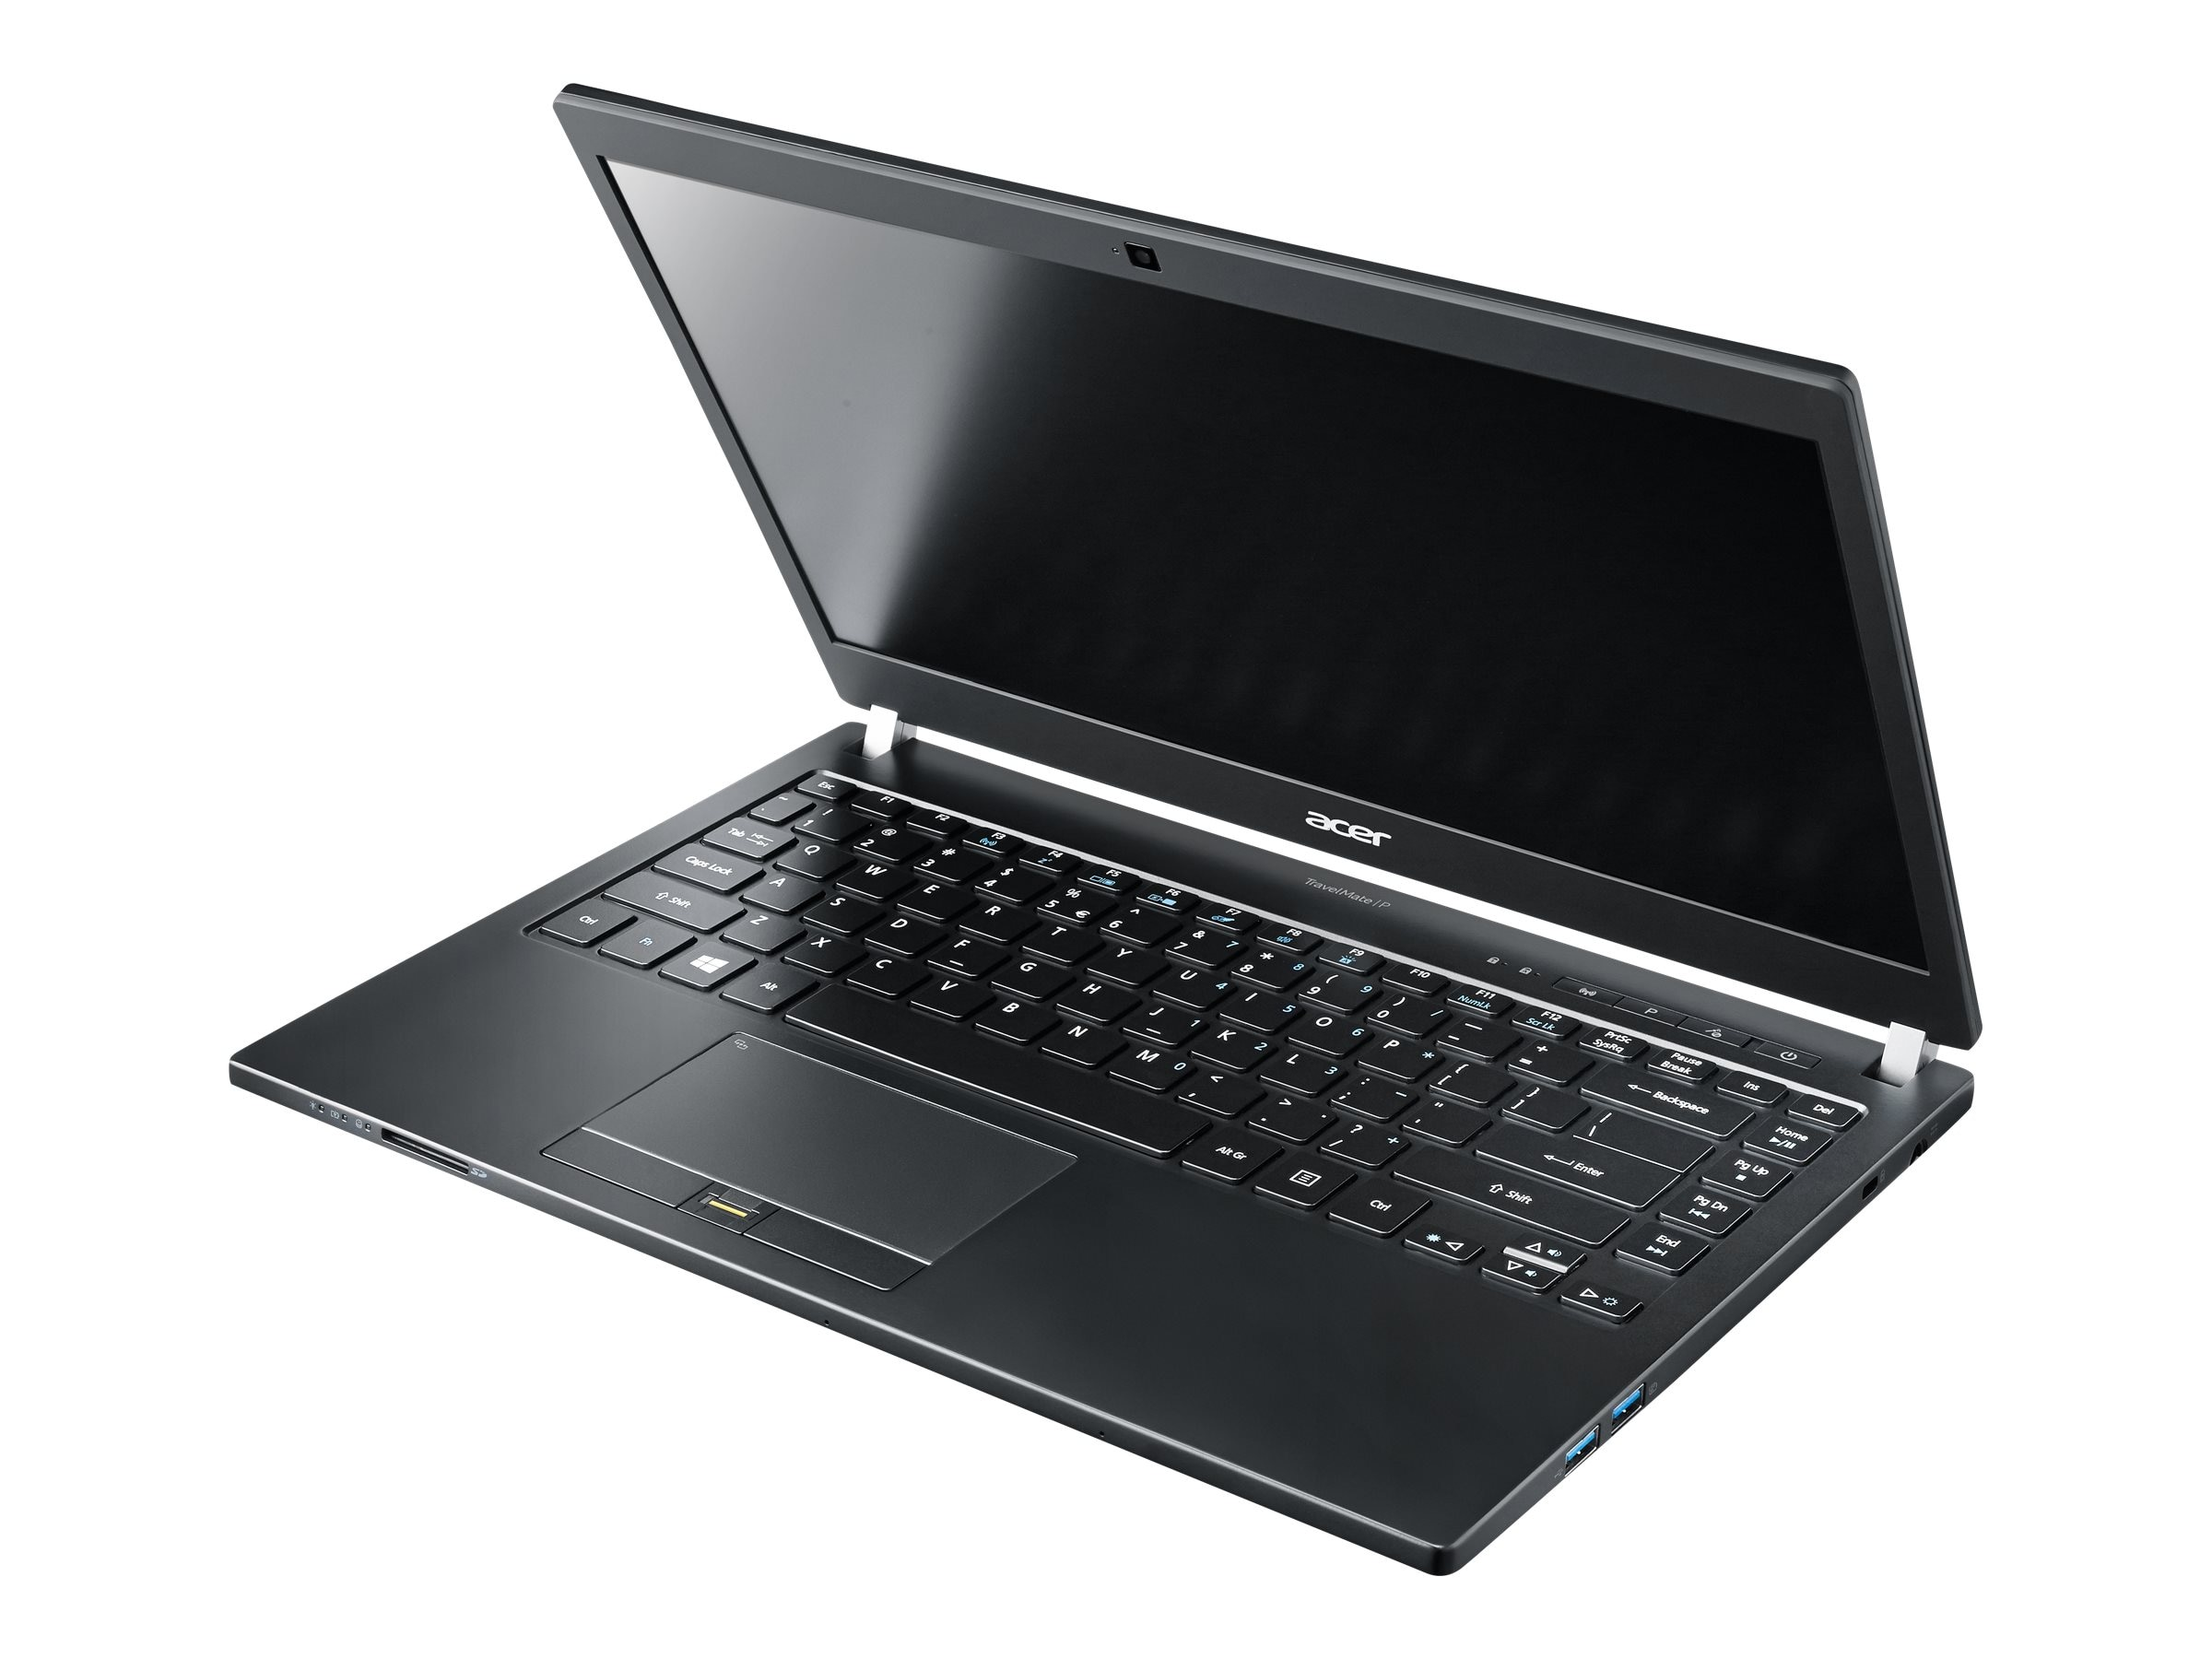 Acer Genius Buy TravelMate P645-S-51FE 2.2GHz Core i5 14in display, NX.VATAA.001